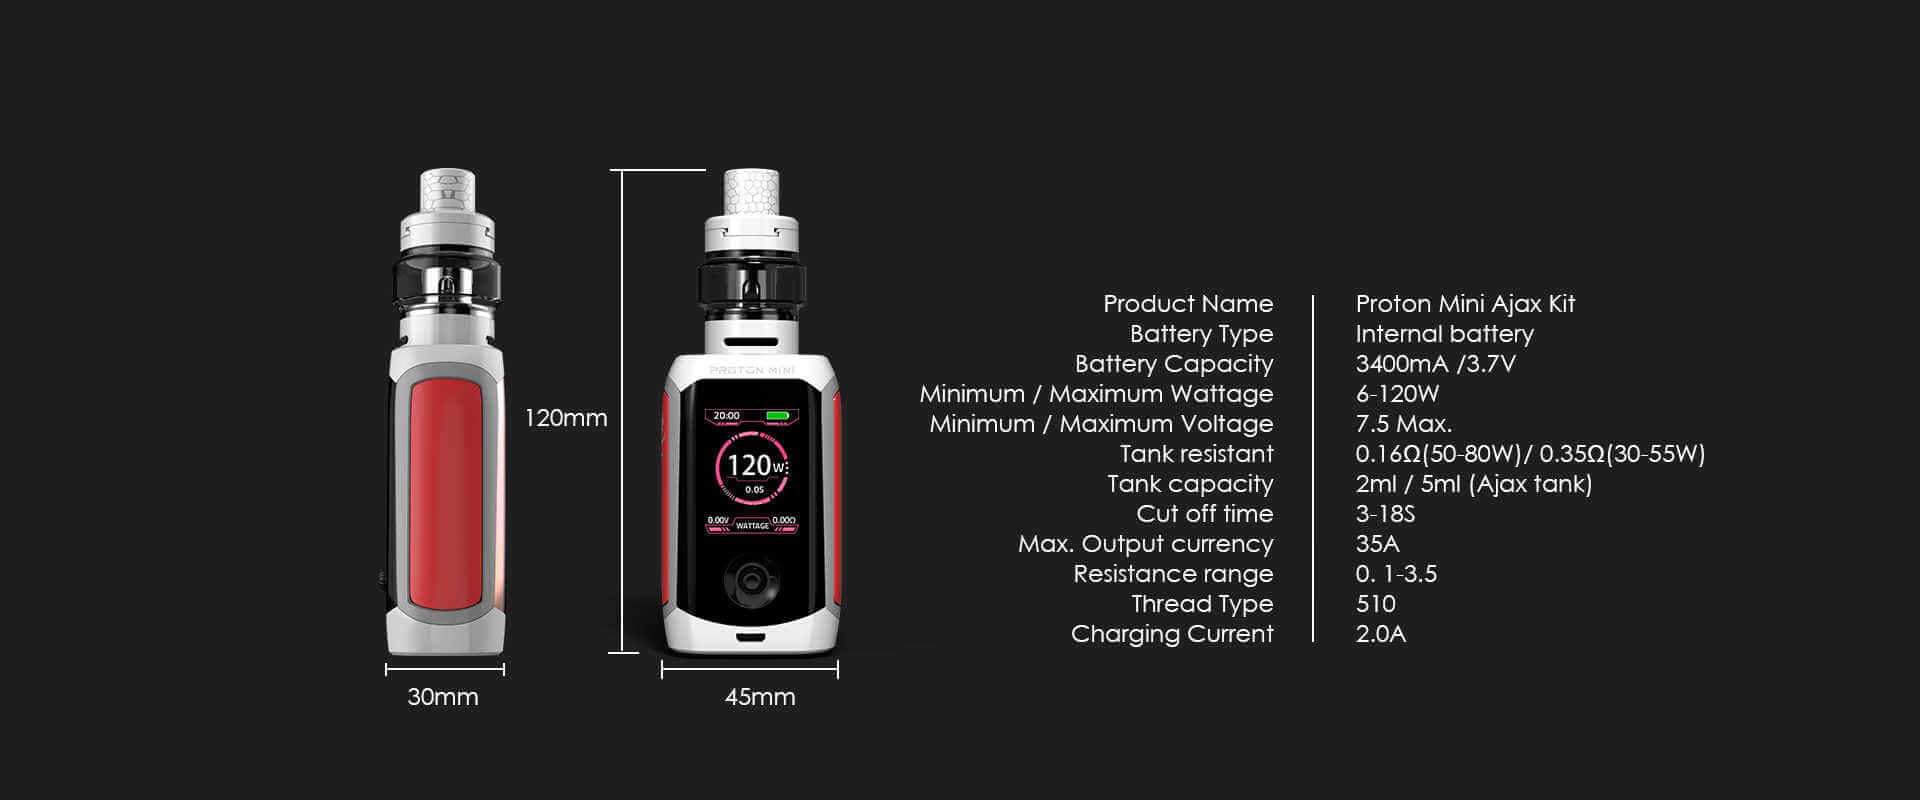 Proton Mini Ajax Kit Specifications